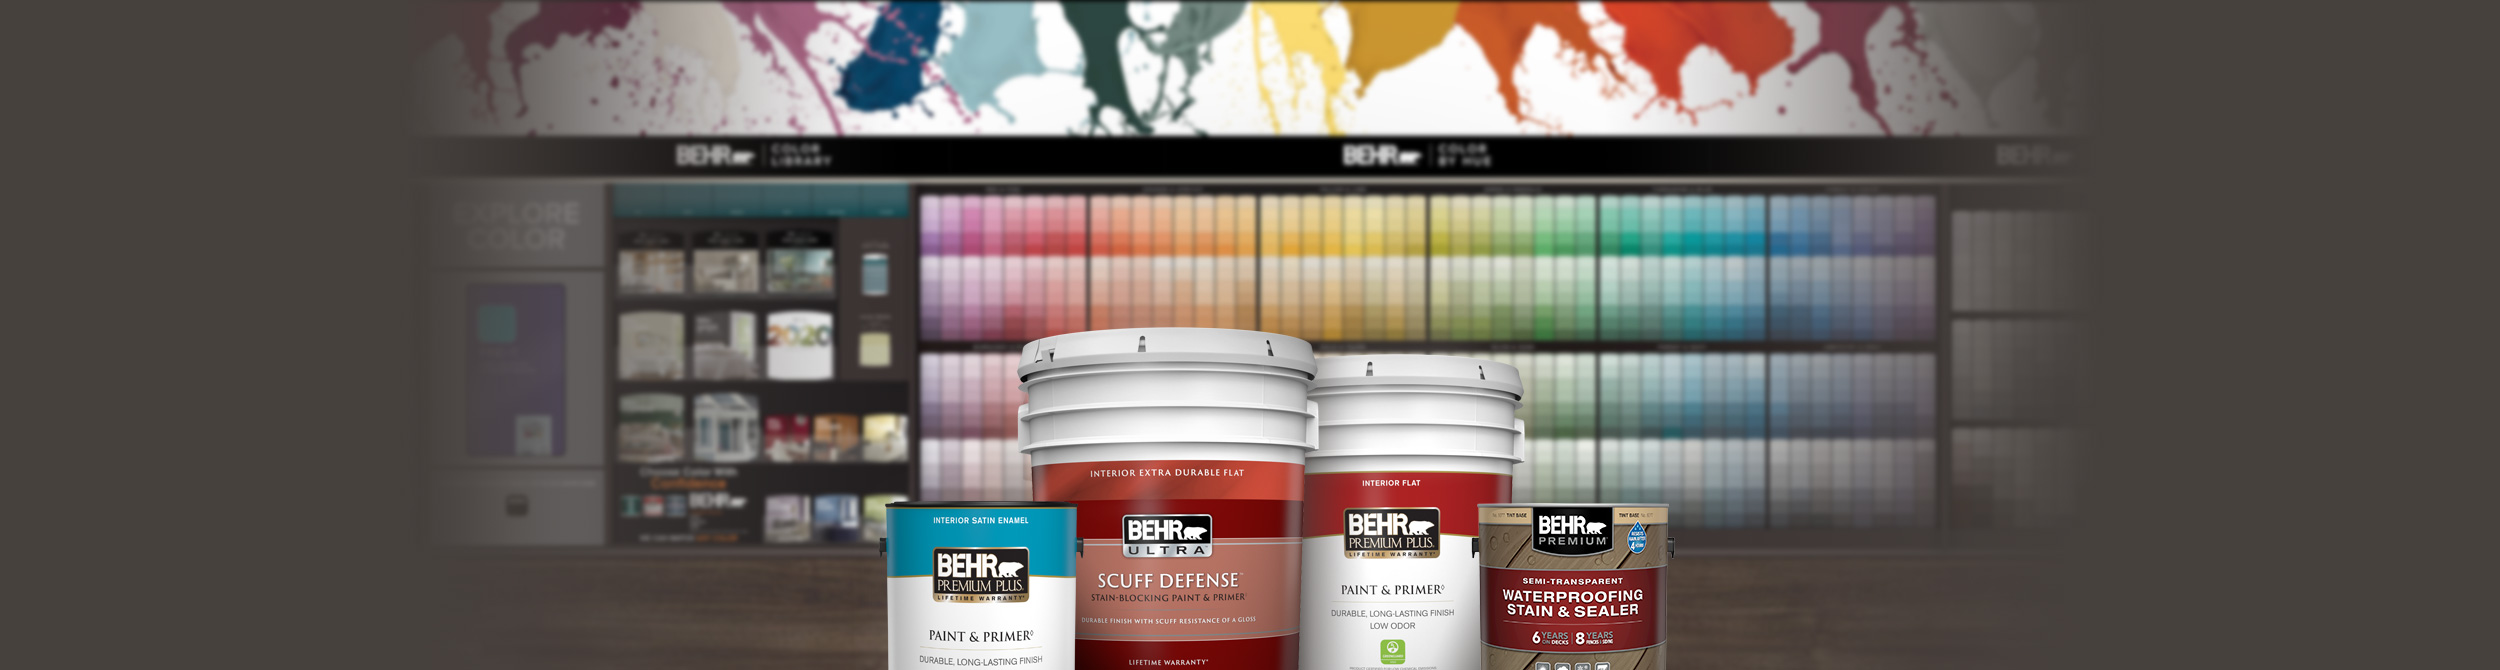 Behr Interior Paint and Exterior Stain Products in front of the 2020 Home Depot Color Solution Center.